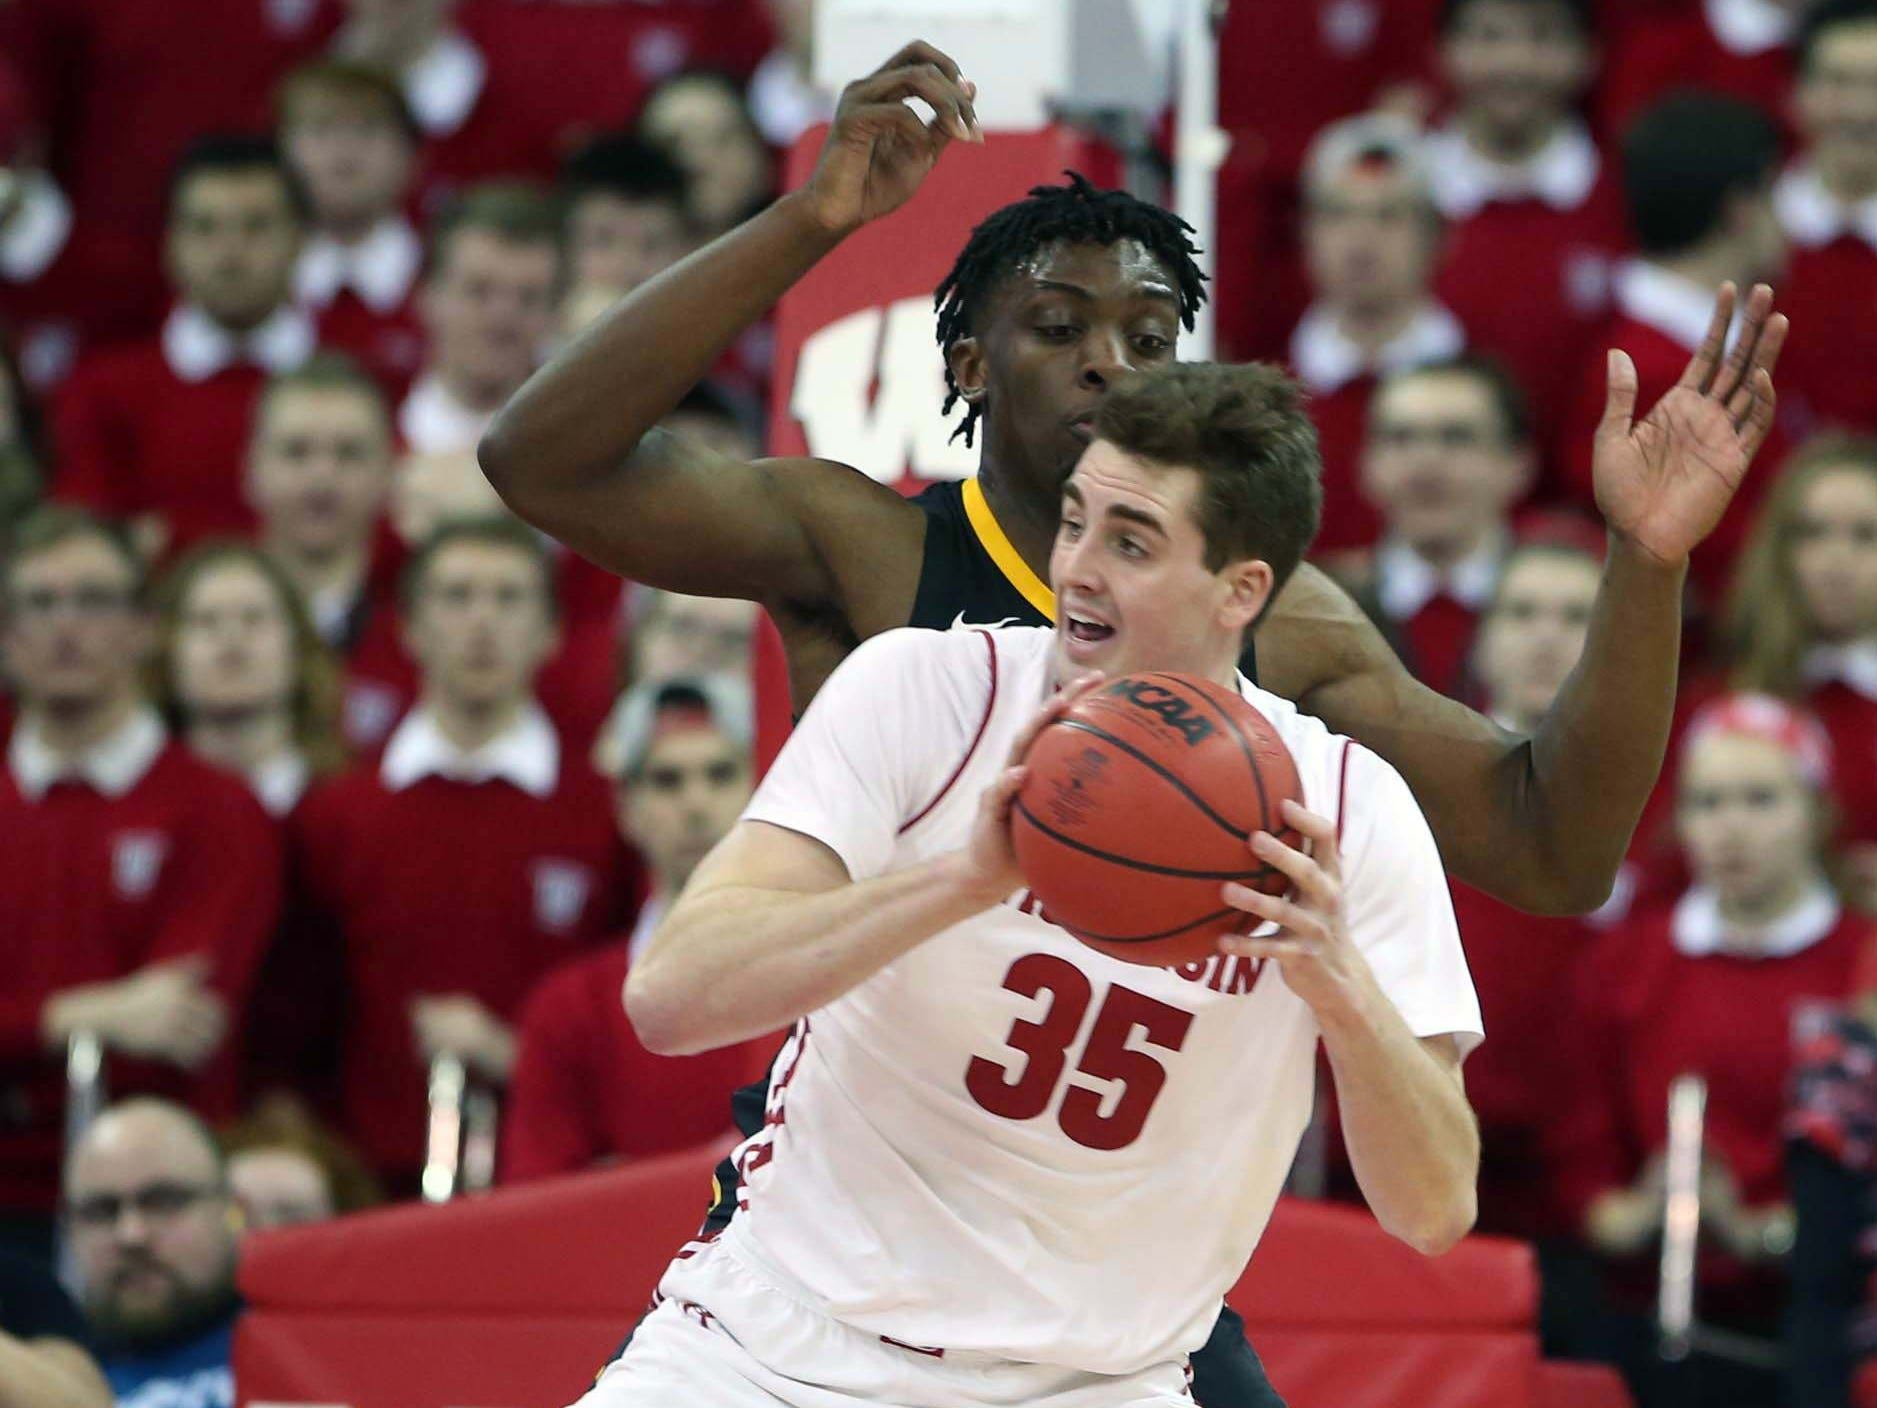 Badgers forward Nate Reuvers ponders his options while being guarded by Iowa forward Tyler Cook on Thursday night.